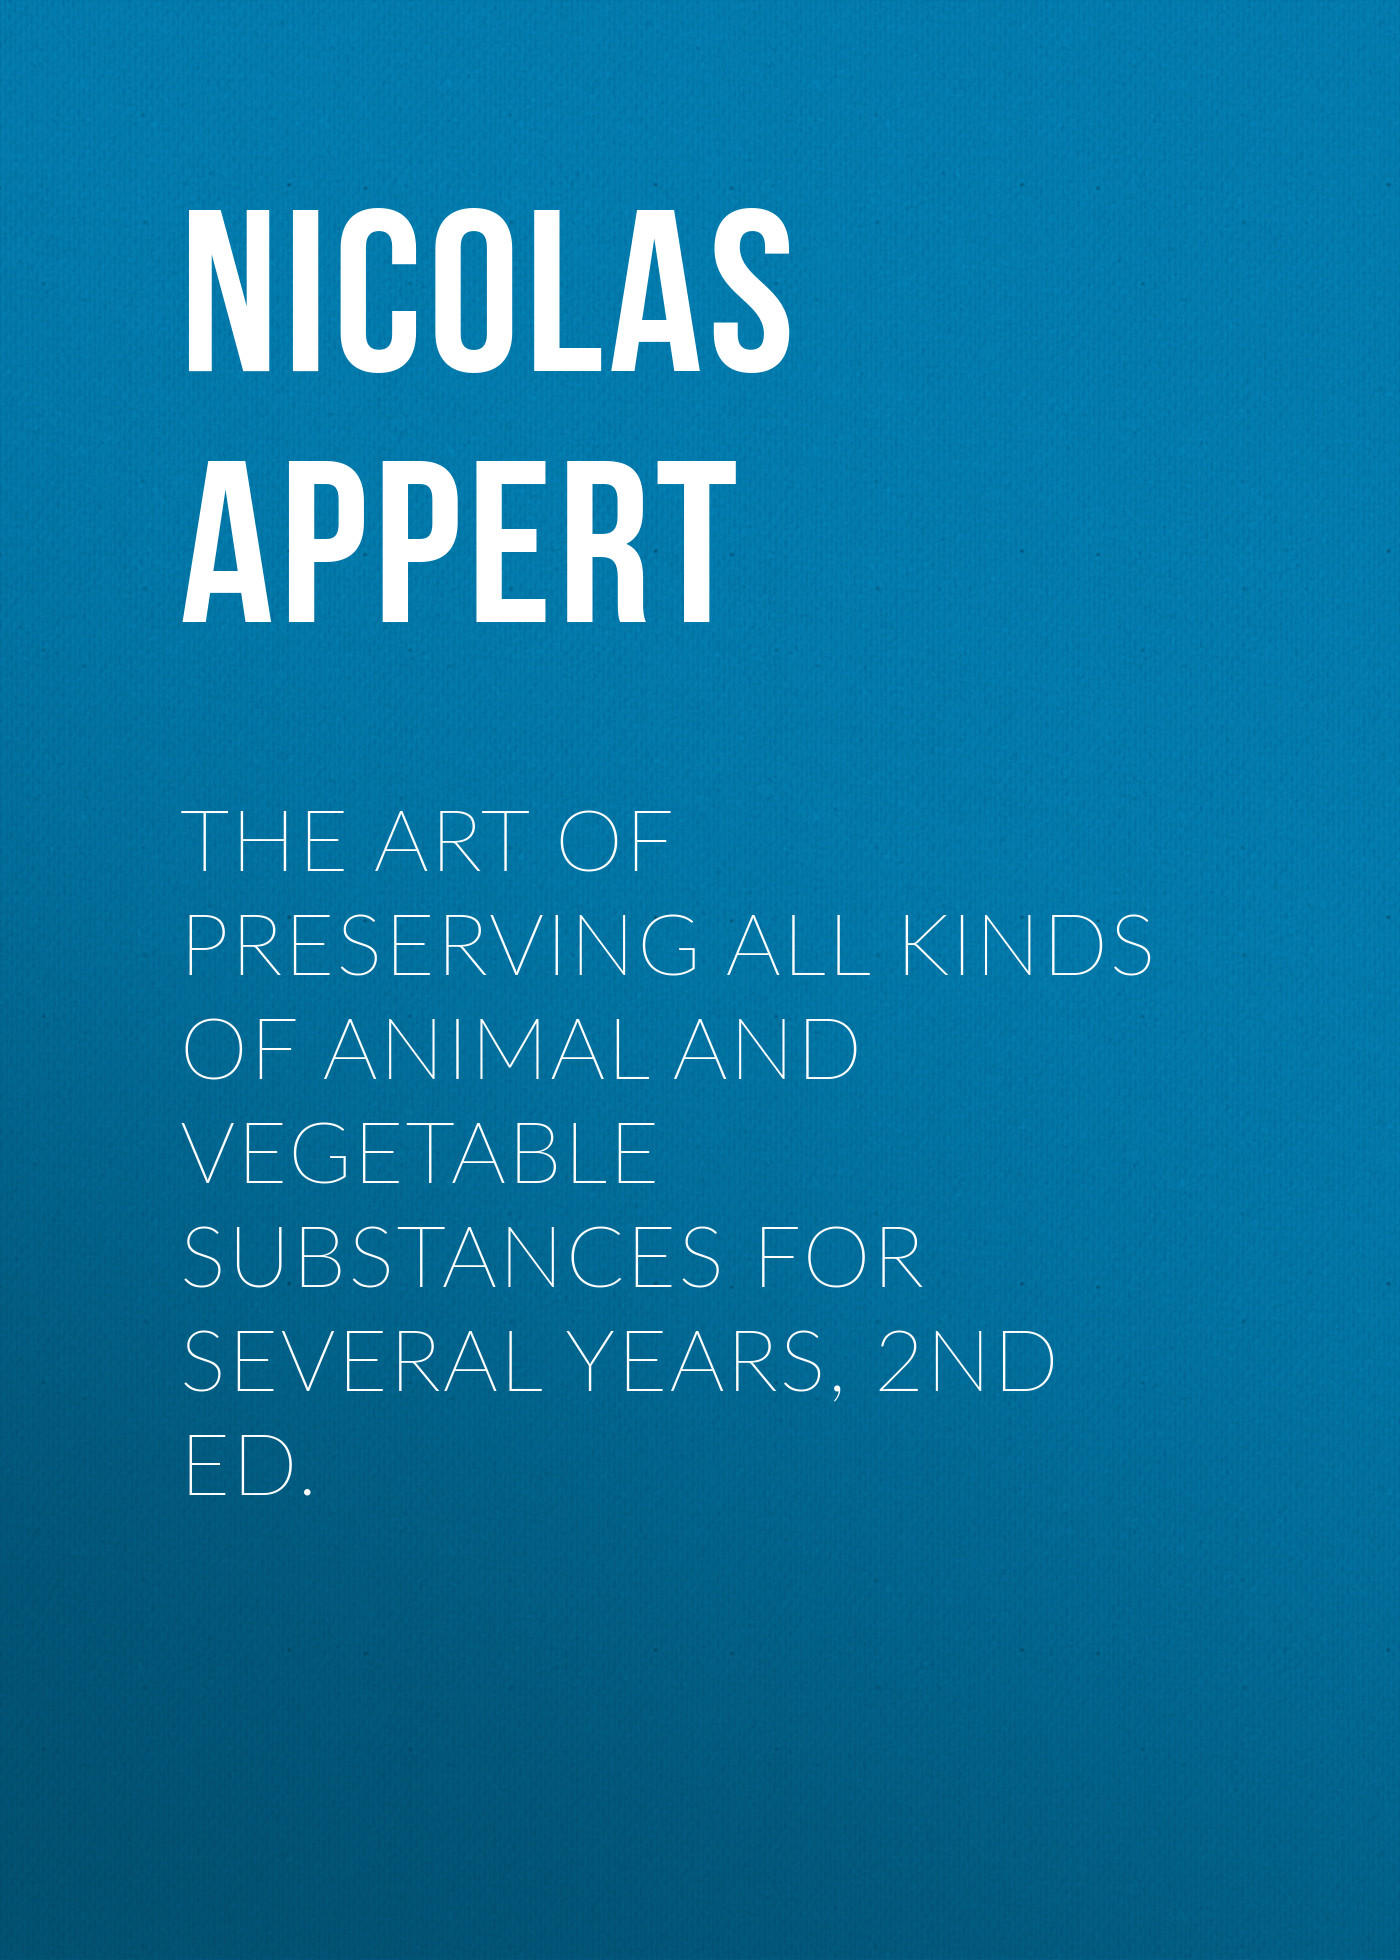 Appert Nicolas The Art of Preserving All Kinds of Animal and Vegetable Substances for Several Years, 2nd ed. aiboully original 10 1 inch android tablets 7 0 os octa core 4gb ram 64gb rom 3g phone call tablet dual sim camera gps fm 9 7